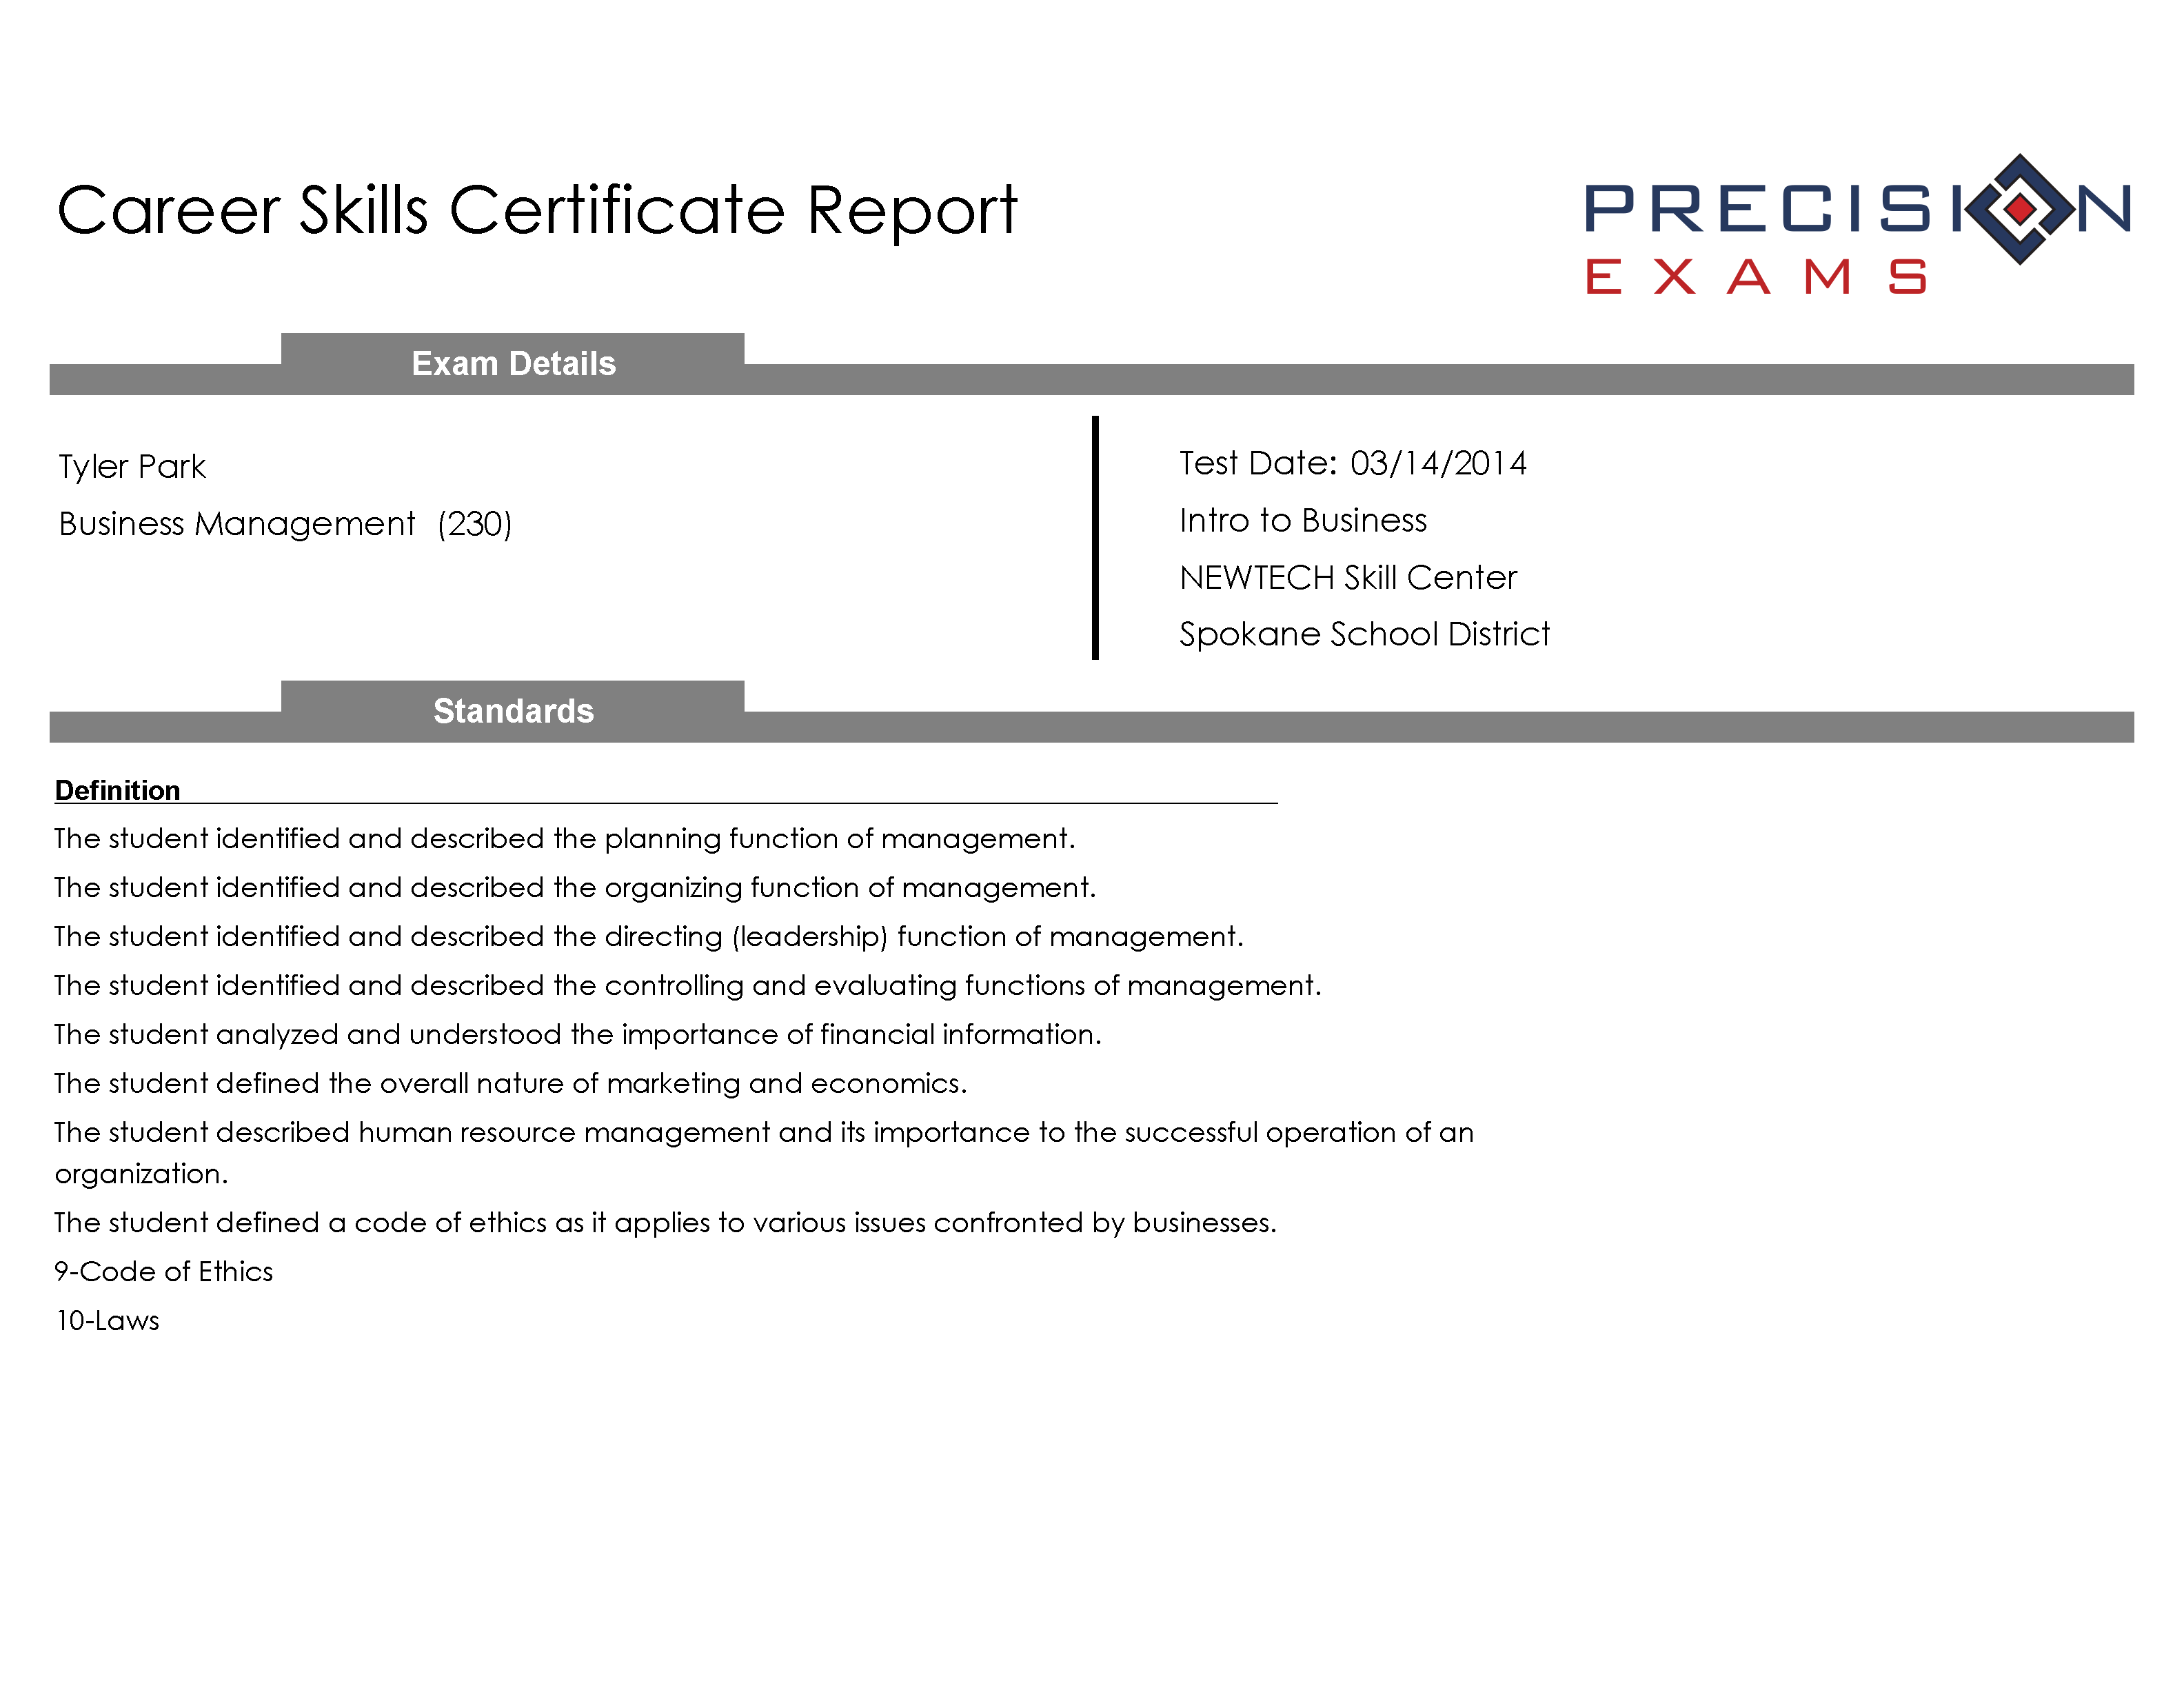 Resume Tips And Templates For Cte Students Precision Exams